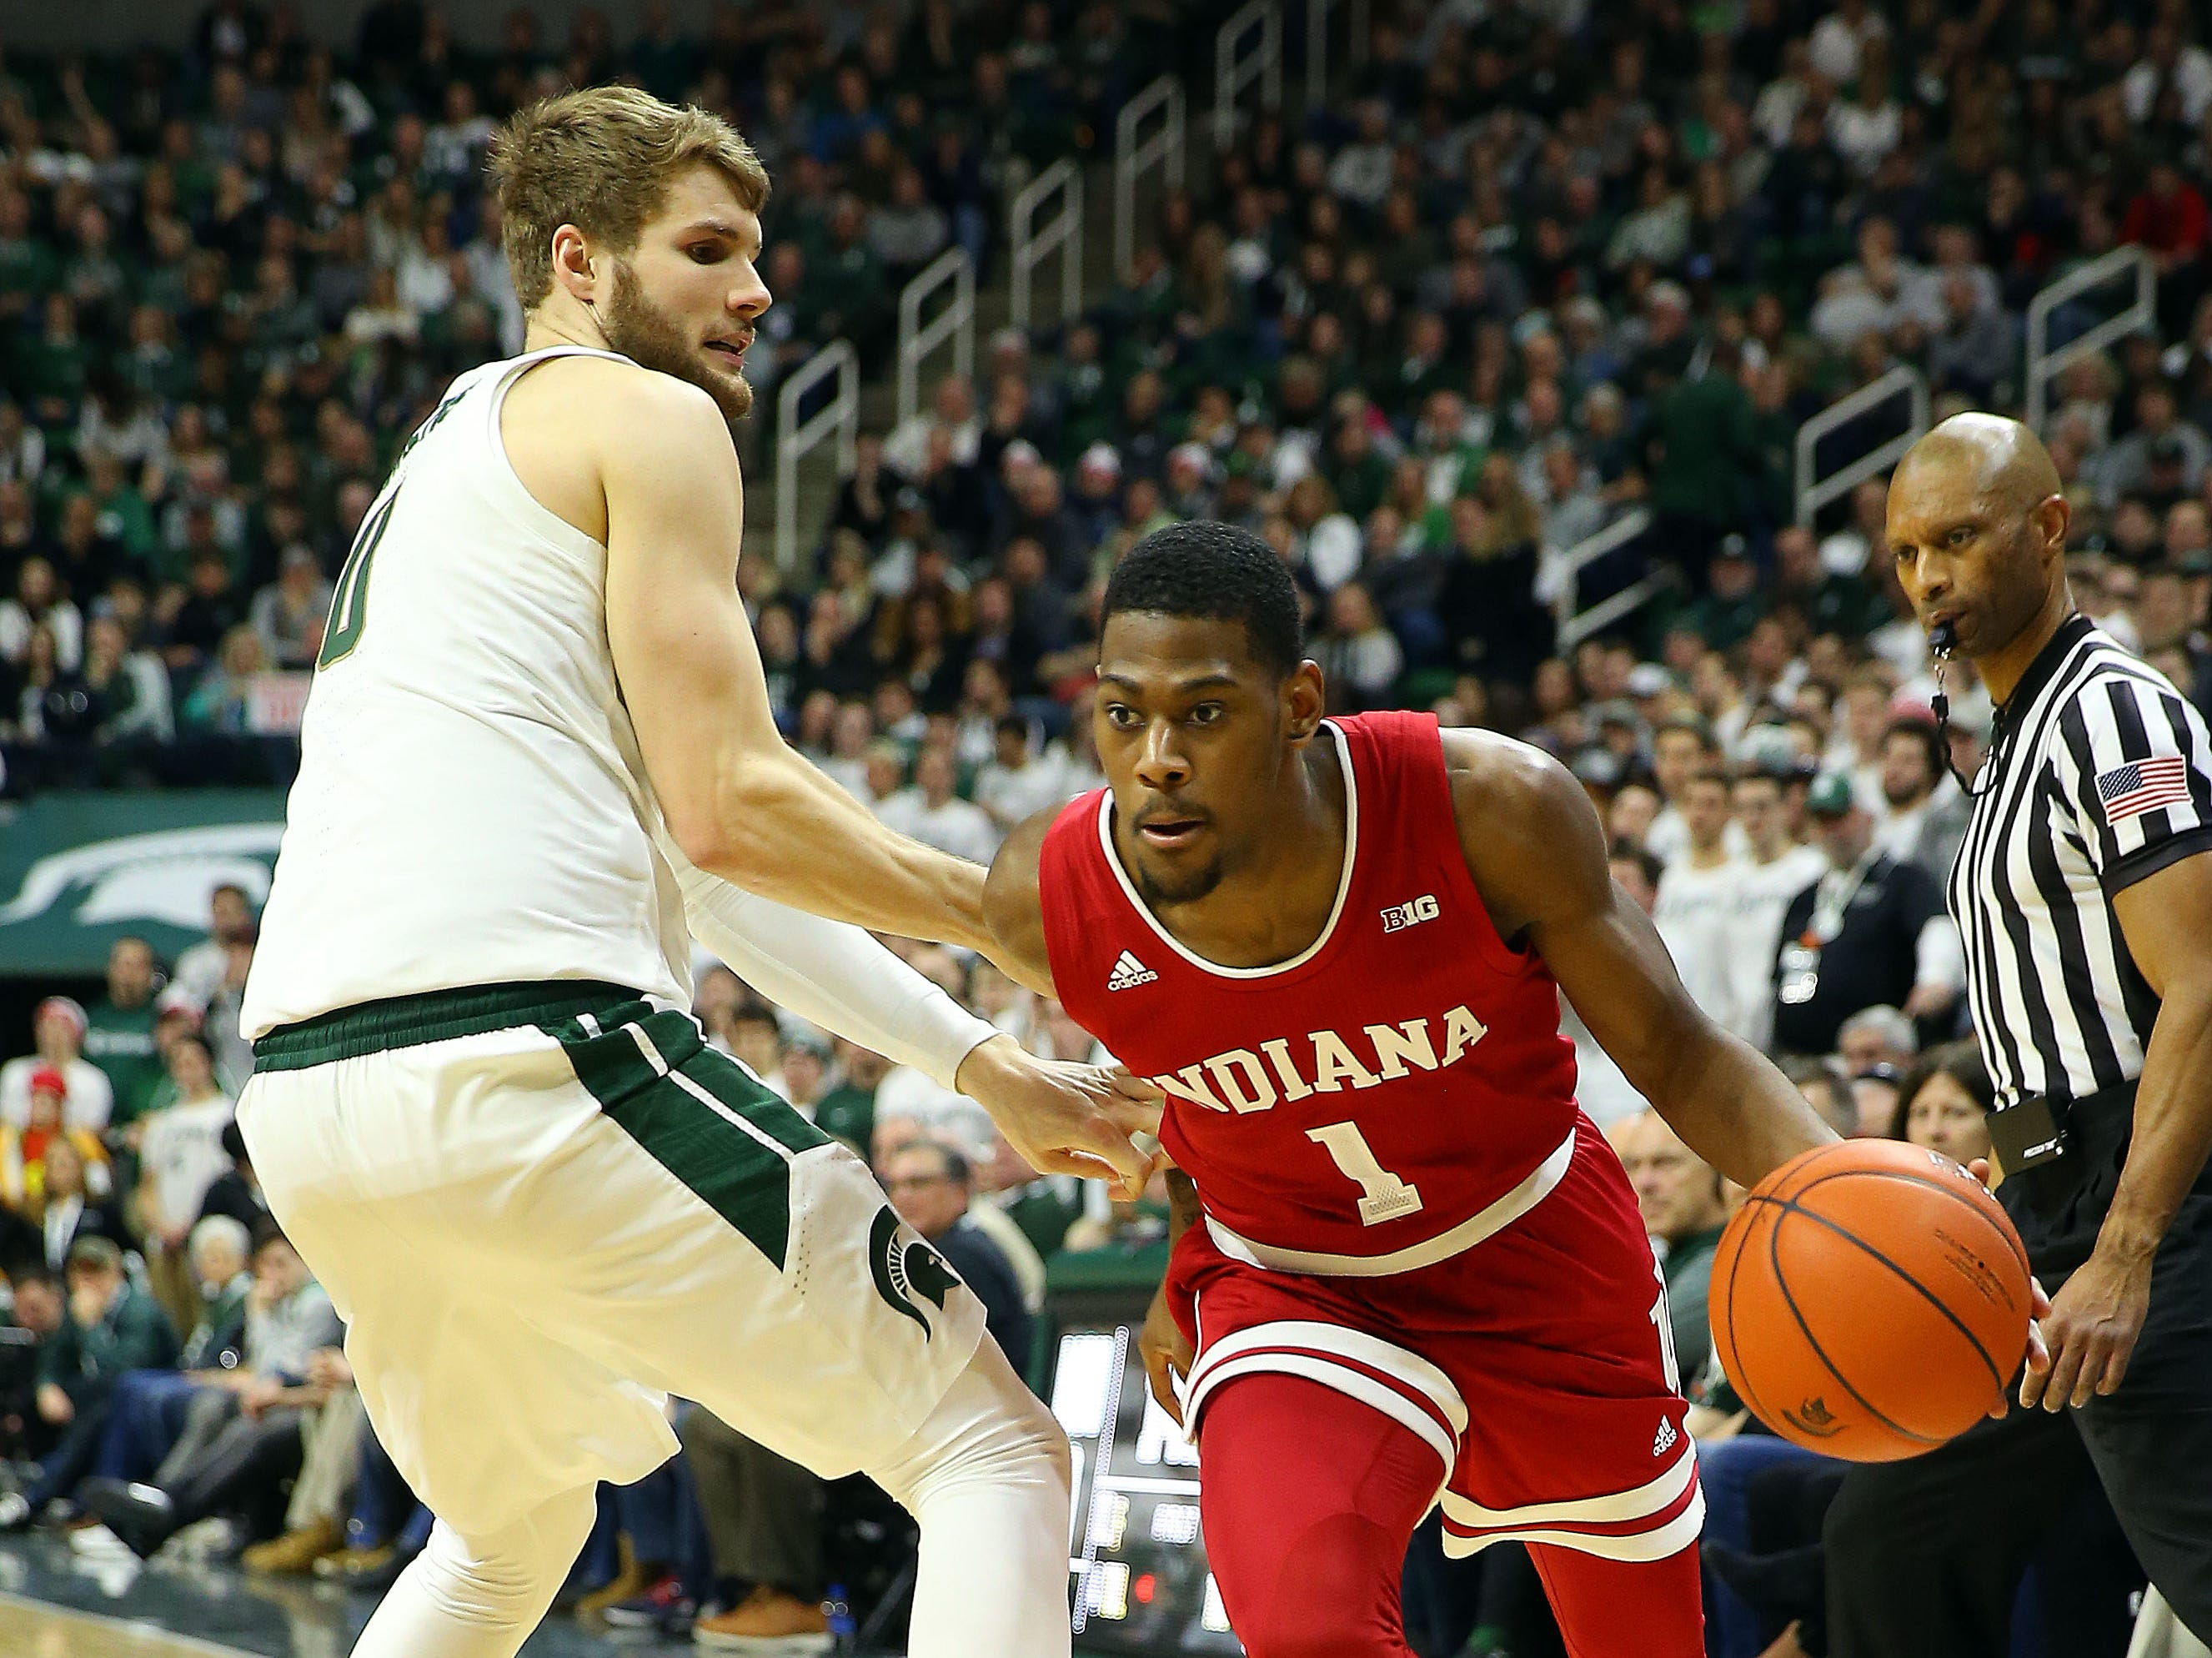 Indiana Hoosiers guard Aljami Durham (1) moves to the basket against Michigan State Spartans forward Kyle Ahrens (0) during the first half  at the Breslin Center.